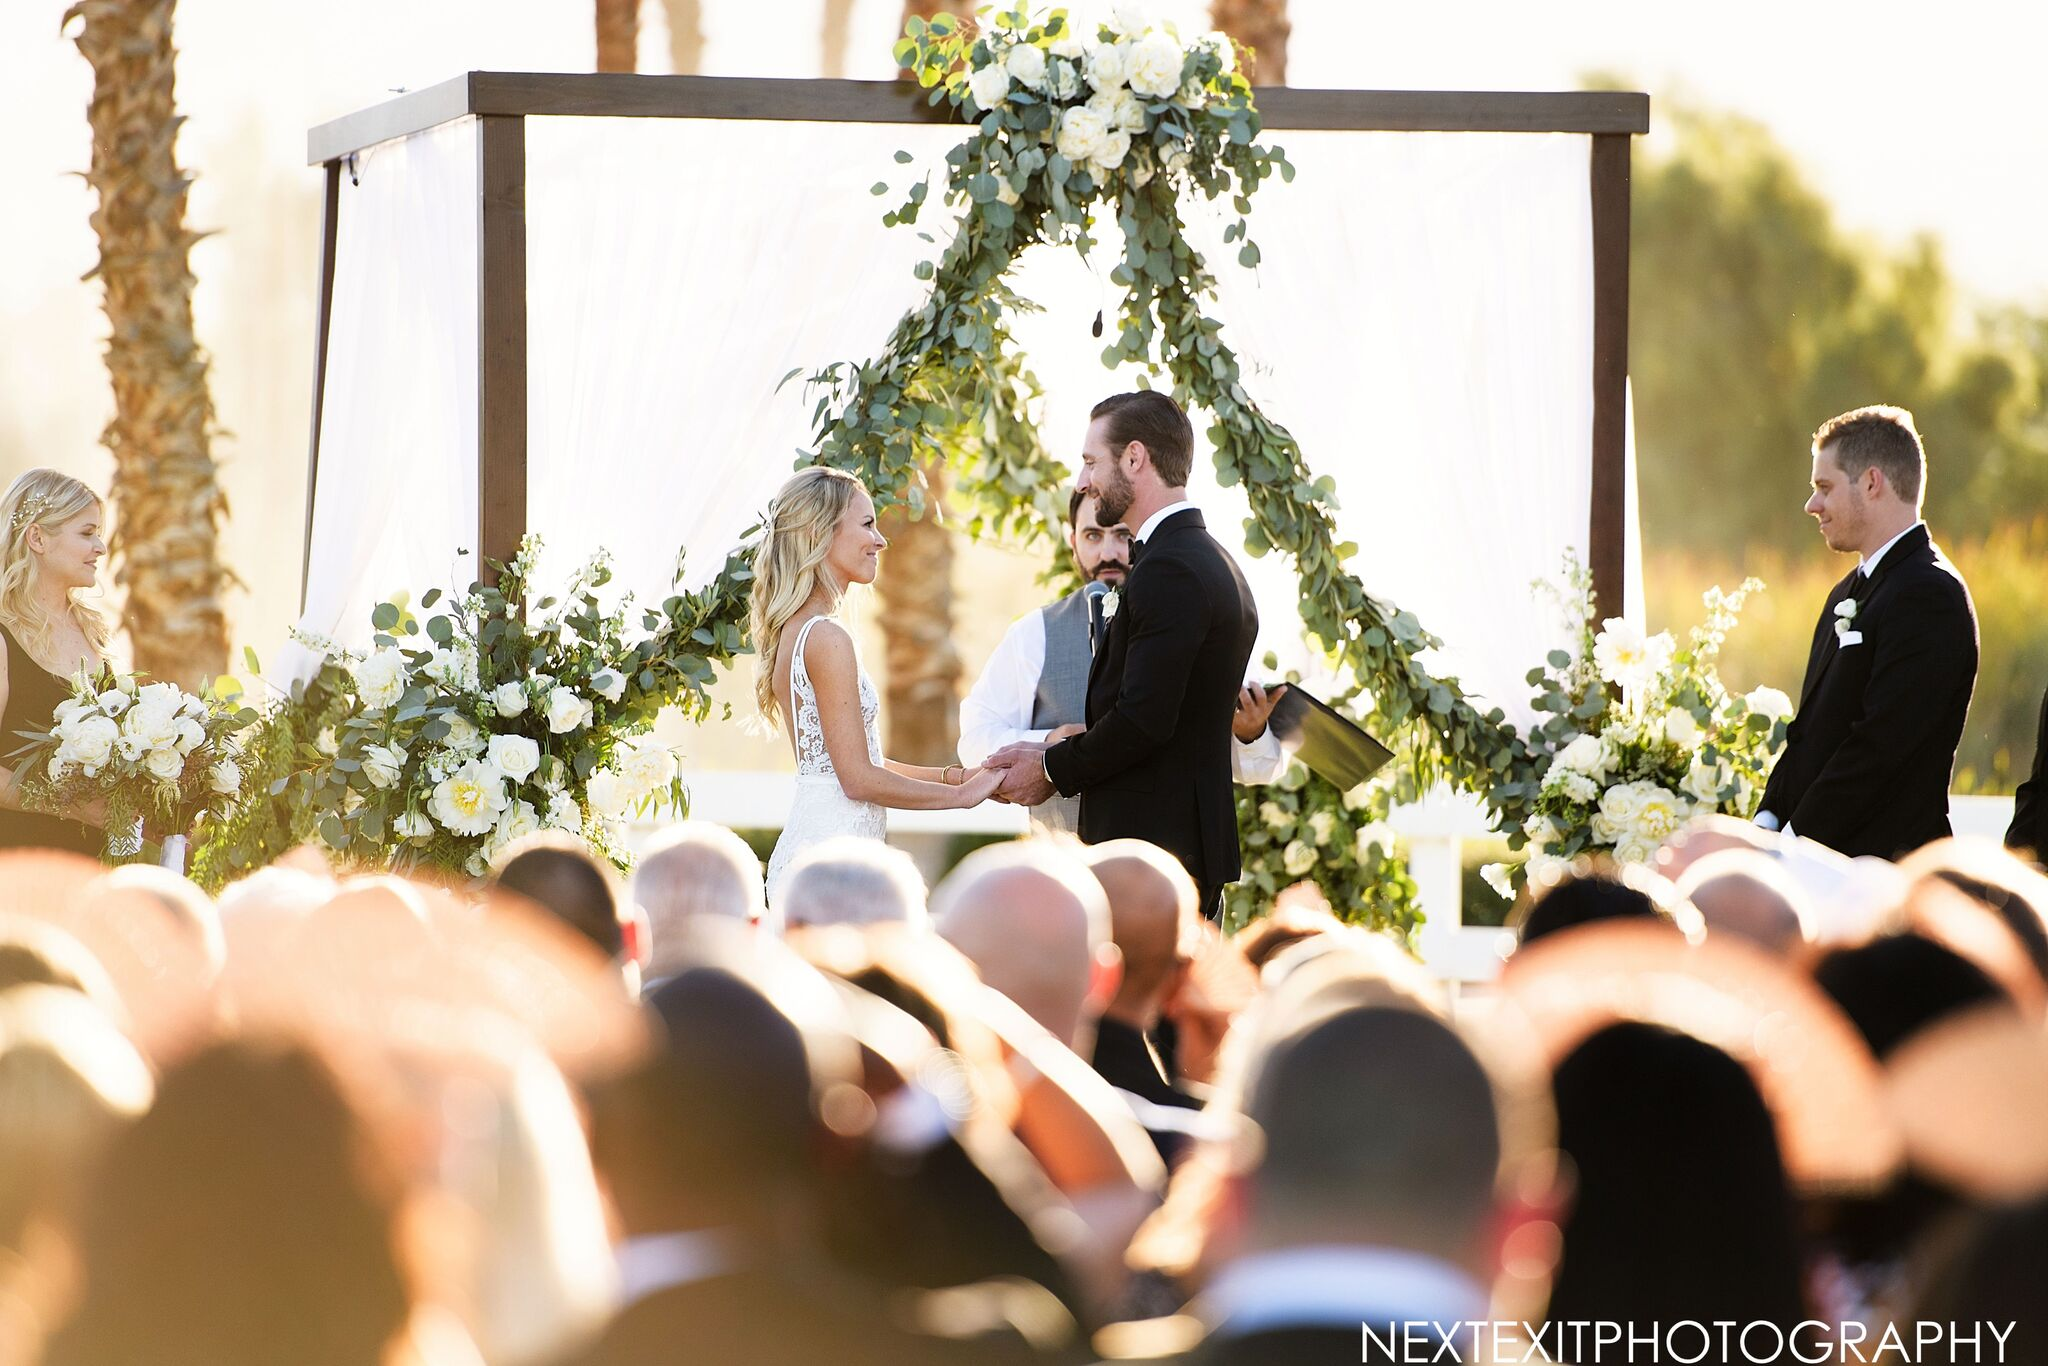 Alex & Jon: Golden Wedding at the Merv Griffin Ranch Estate